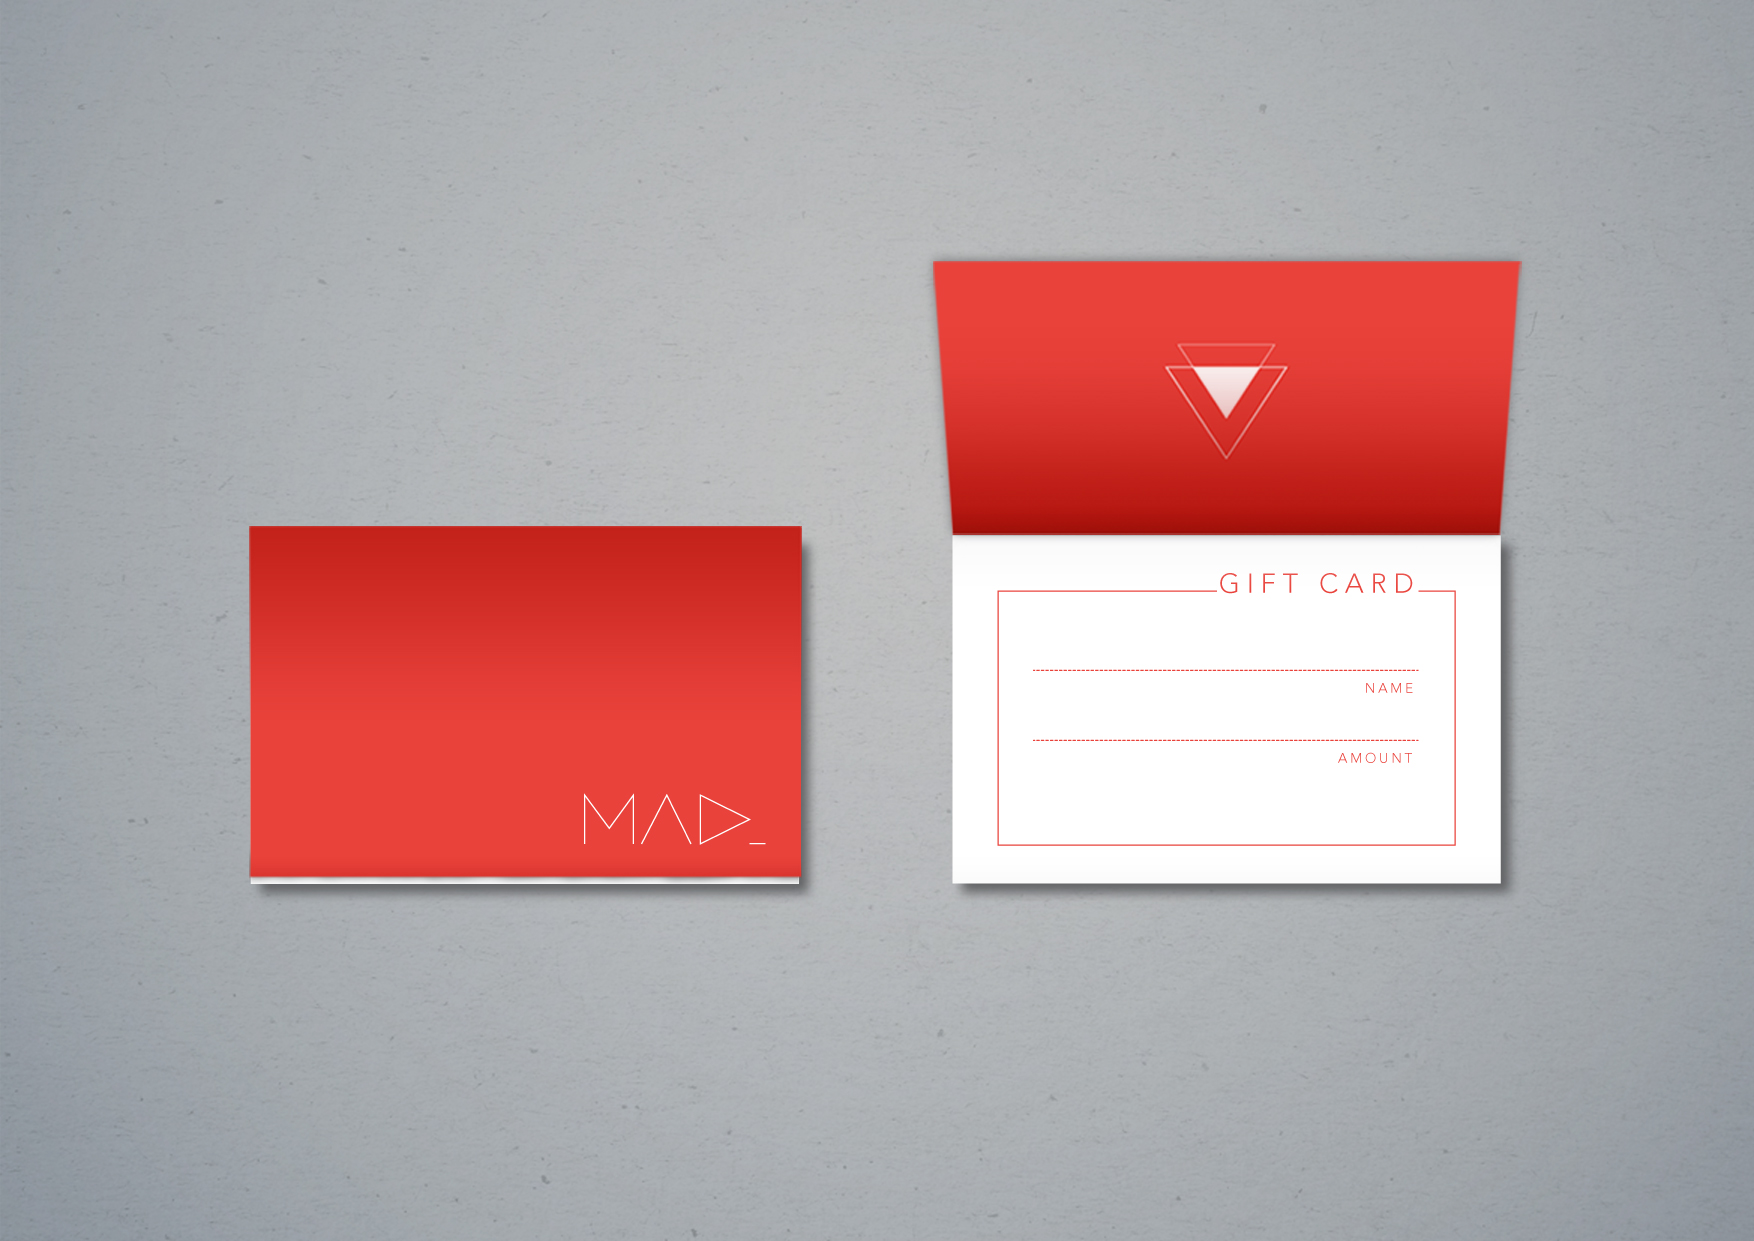 04-GIFTCARD